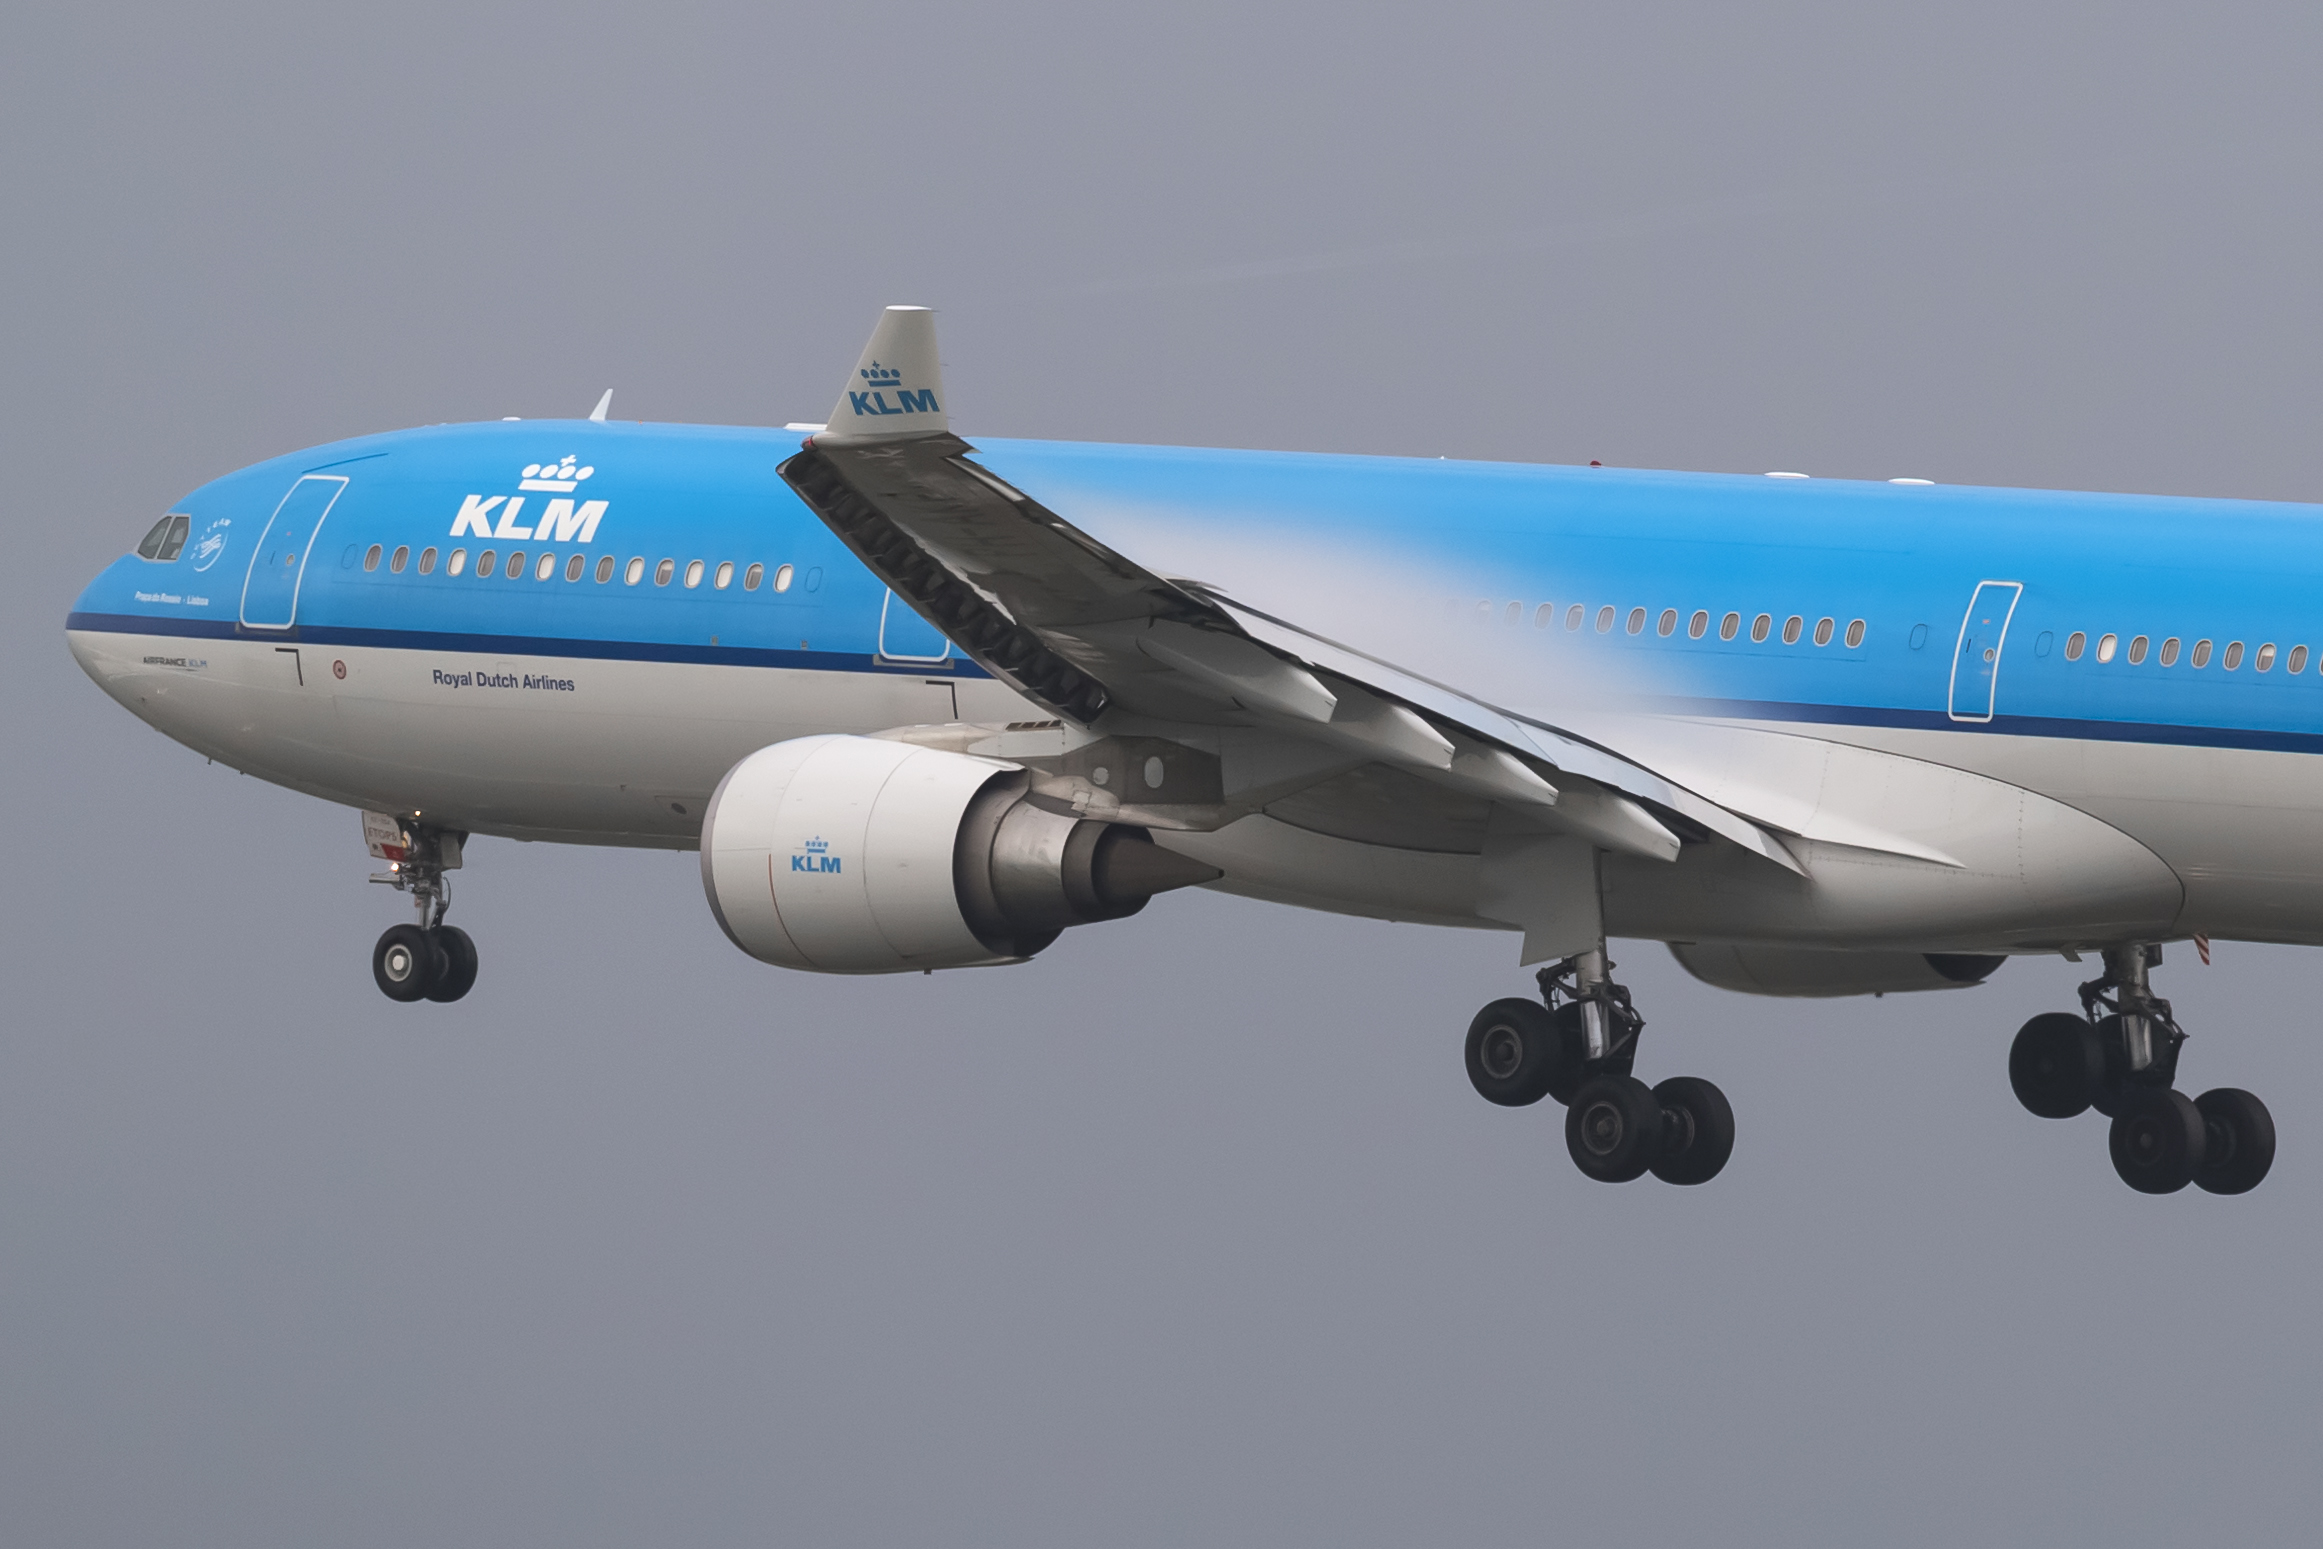 En Airbus A330-300 fra KLM. Foto: © Thorbjørn Brunander Sund, Danish Aviation Photo